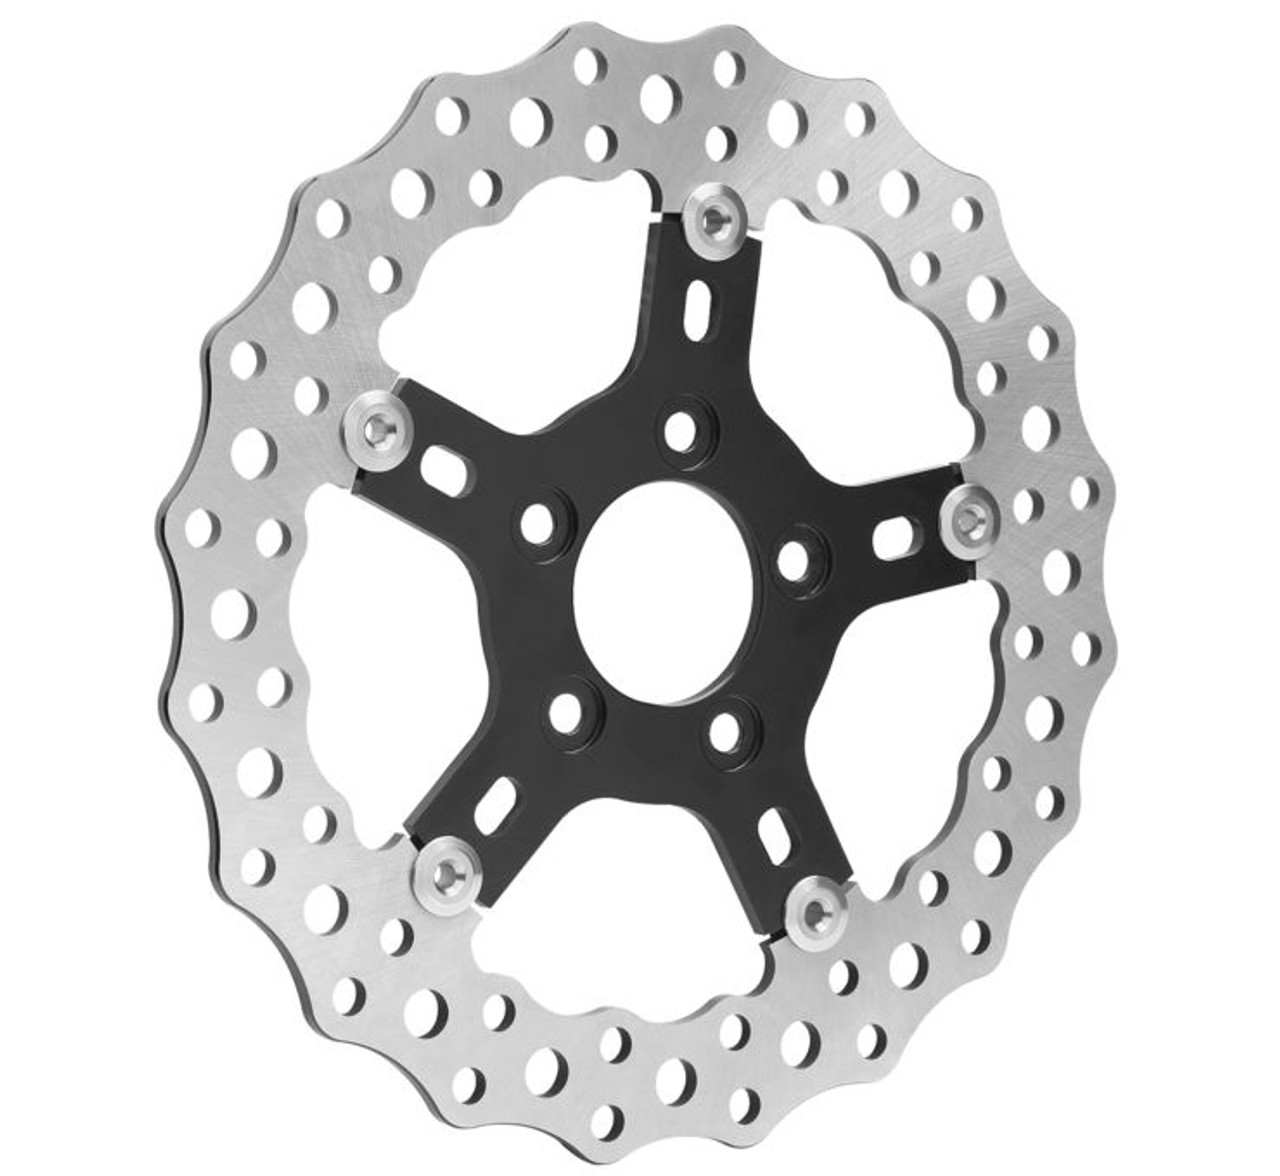 FRONT+REAR POWER PERFORMANCE DRILLED SLOTTED PLATED BRAKE DISC ROTORS 51708PS